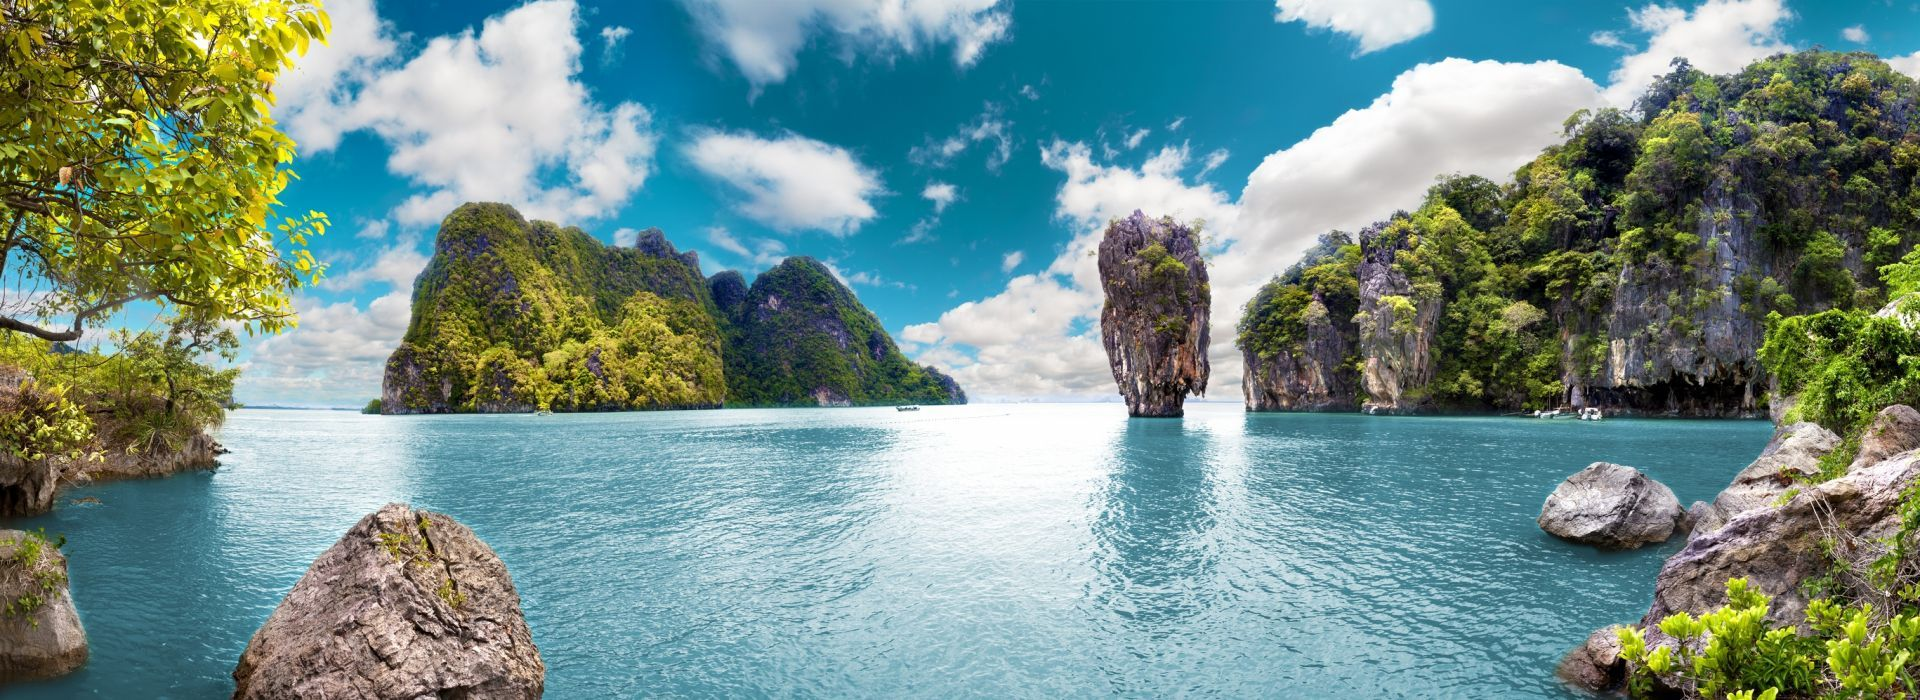 Sailing, yachting and motor boating Tours in Phuket